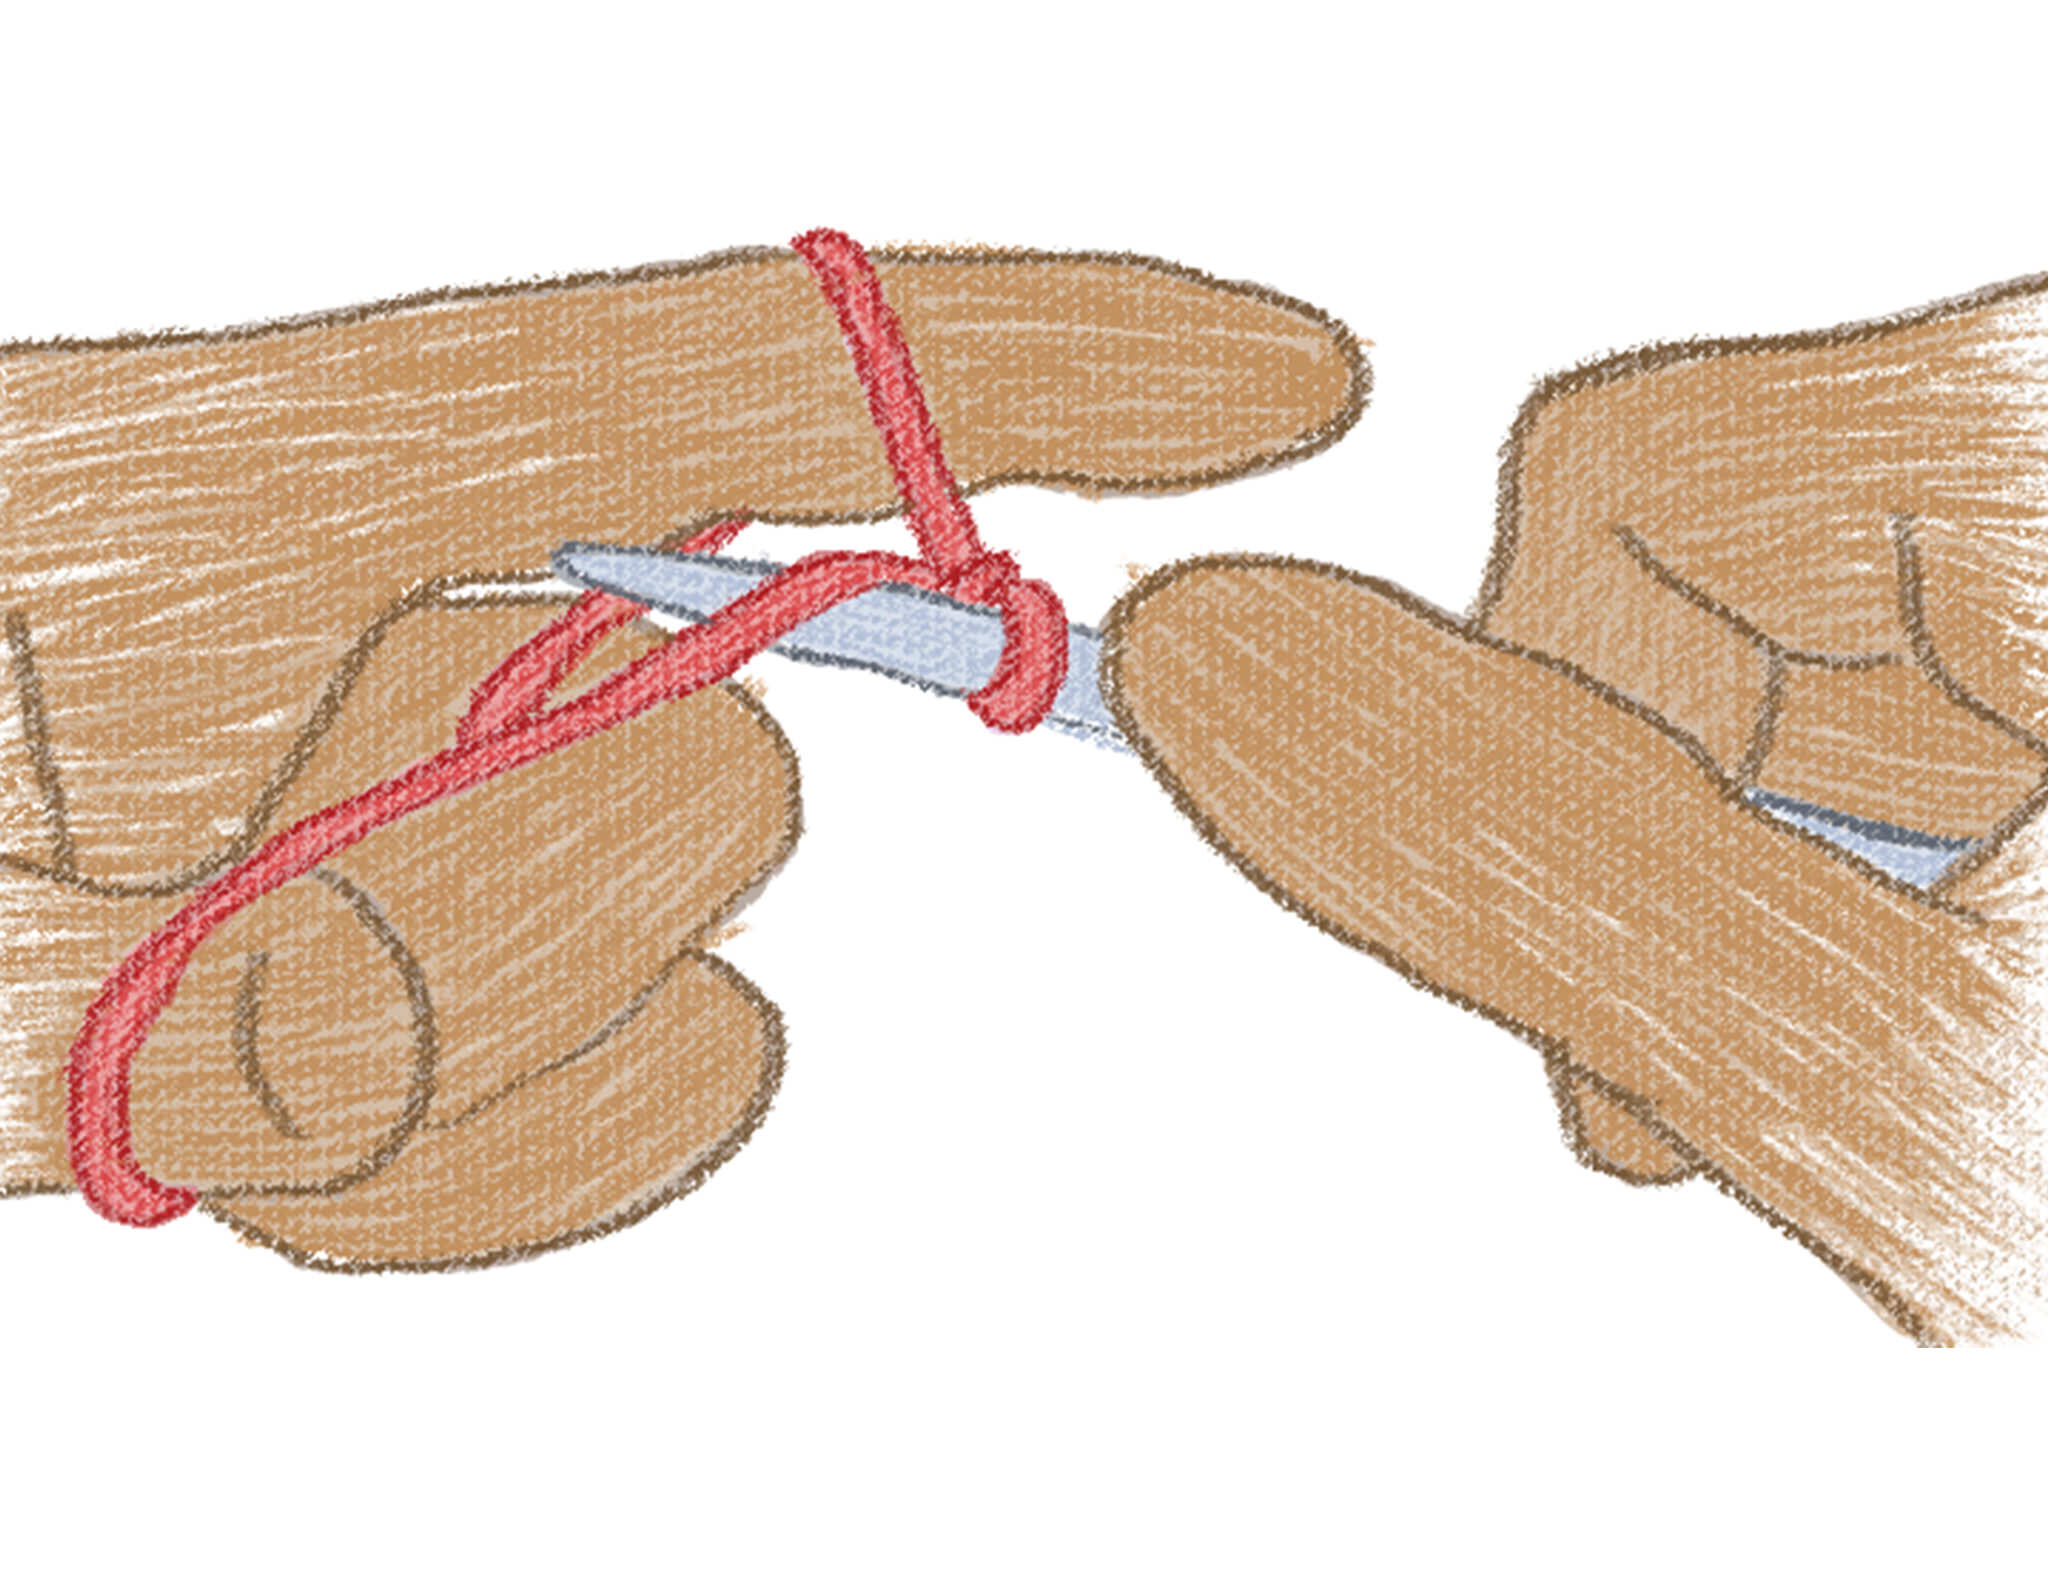 illustration of bringing the needle under the yarn on the index finger